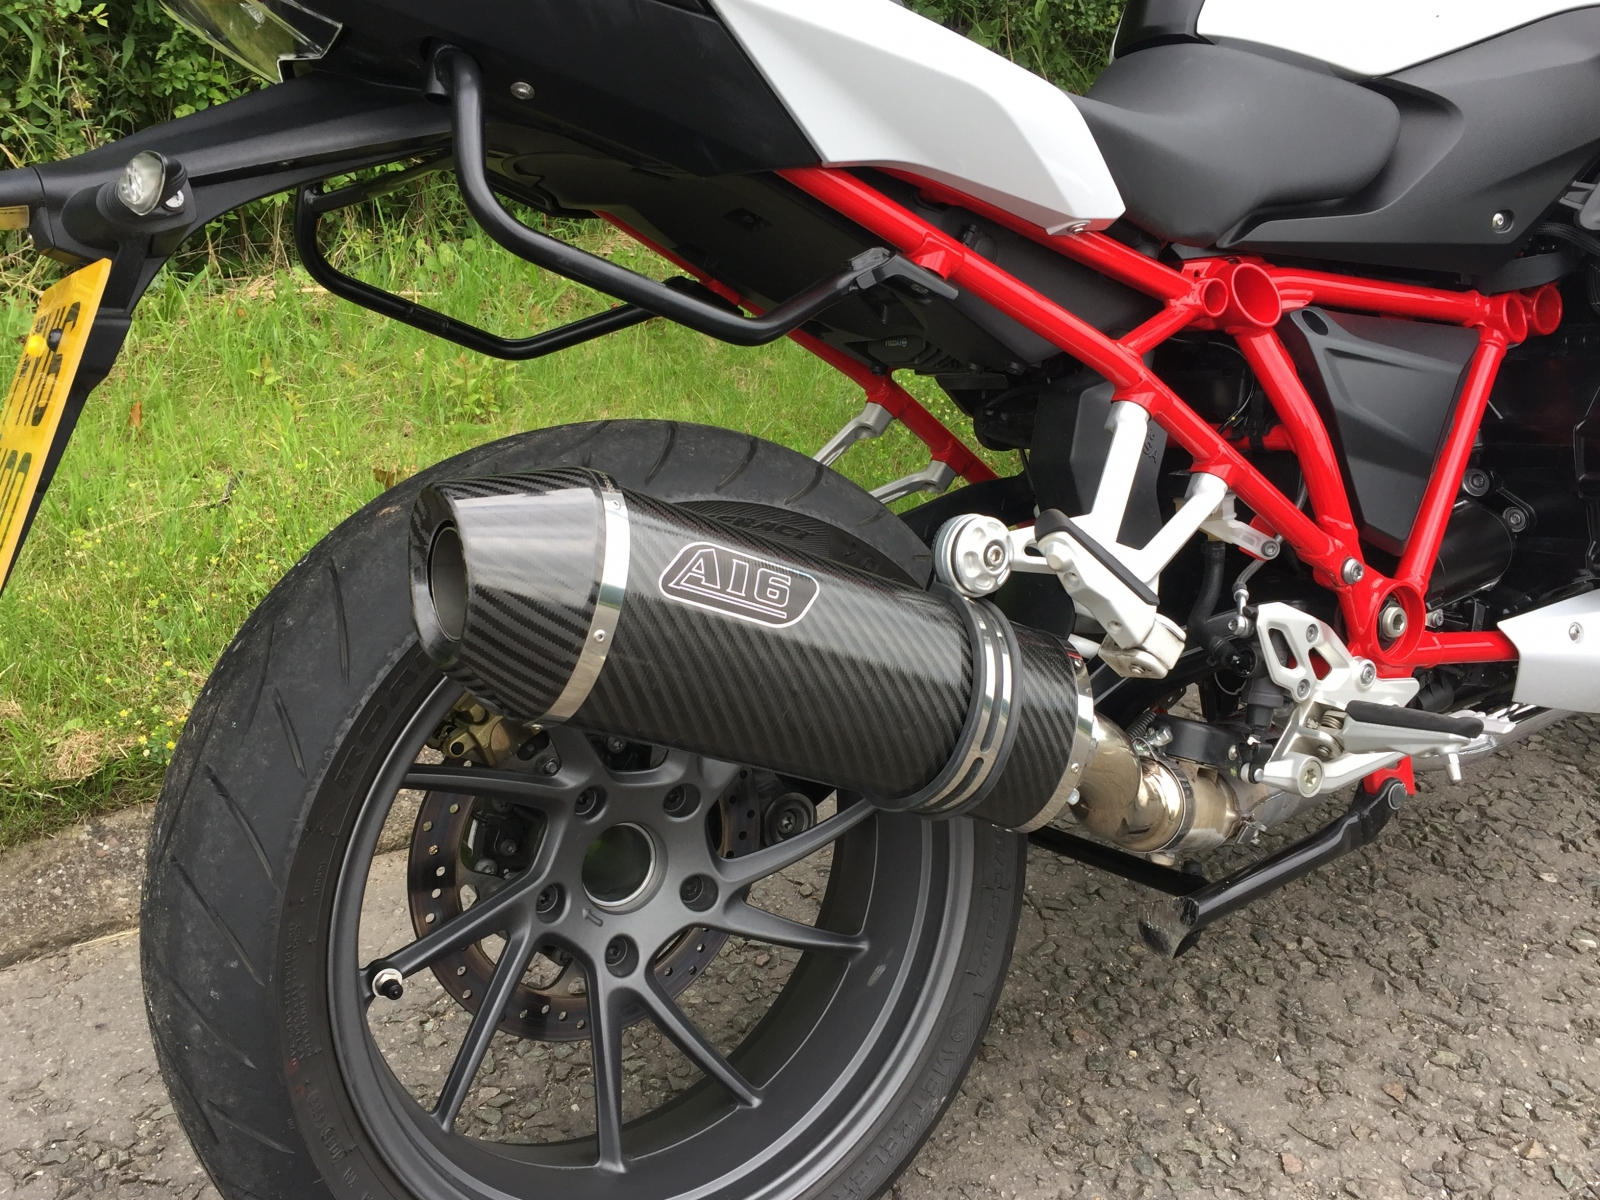 """BMW R1200S 2015 onwards<p>A16 Road Legal Carbon Exhaust with Carbon Cap Outlet</p><br/><a href=""""https://a16roadnracesupplies.co.uk/product/a16-bmw-exhausts/"""">Buy now!</a>"""